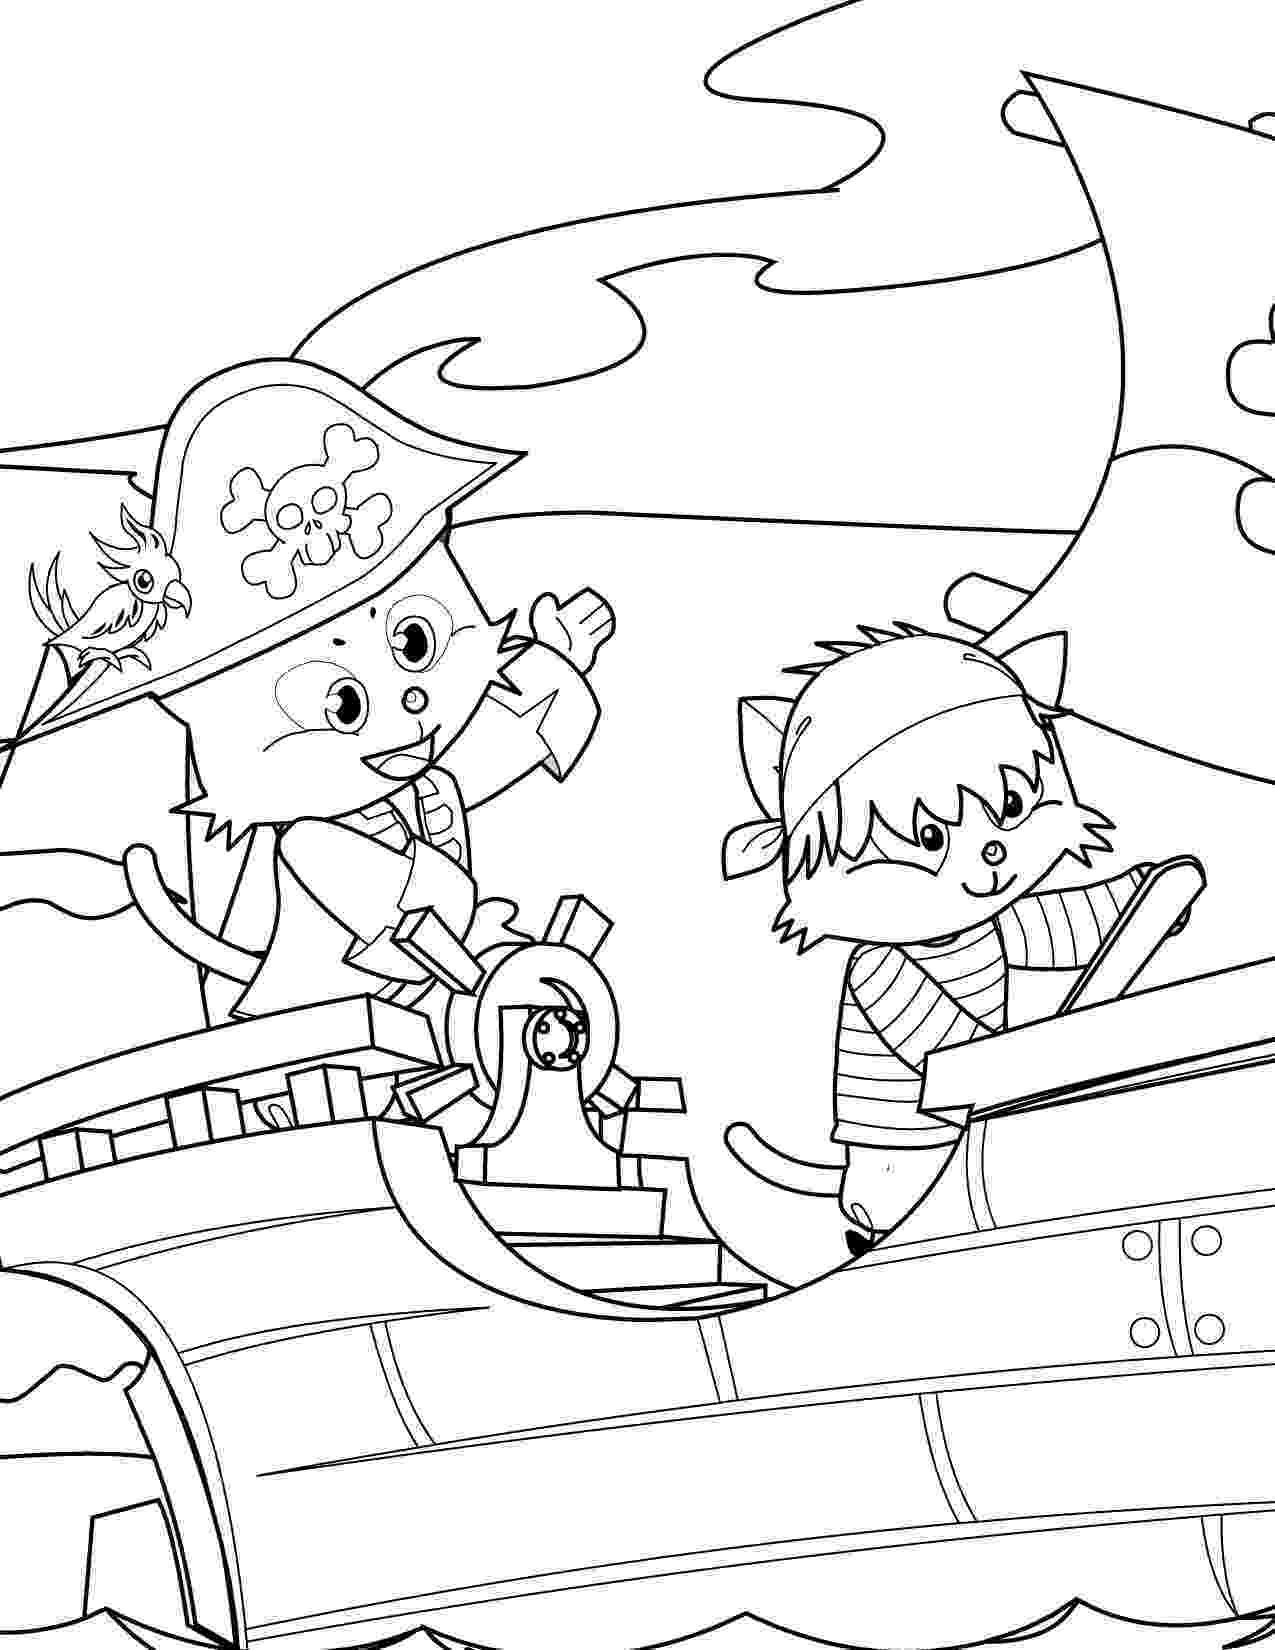 pirate coloring pages for kids pirate head pirates coloring pages for kids to print color for coloring pages pirate kids